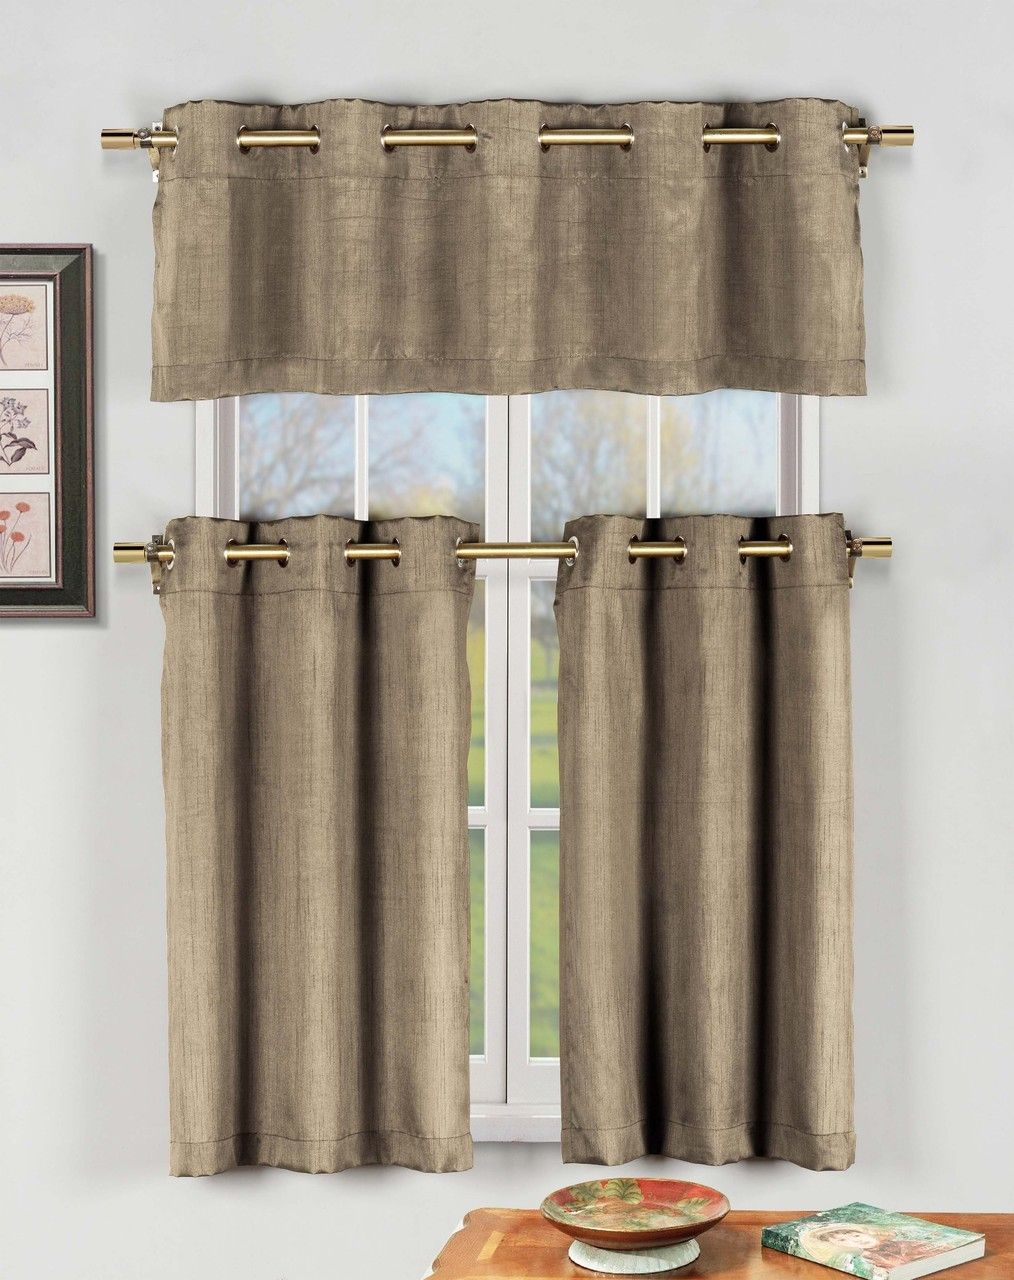 Taupe 3 Pc Kitchen Window Curtain Set With Silver Metal Grommets 1 Valance 2 Tier Panels